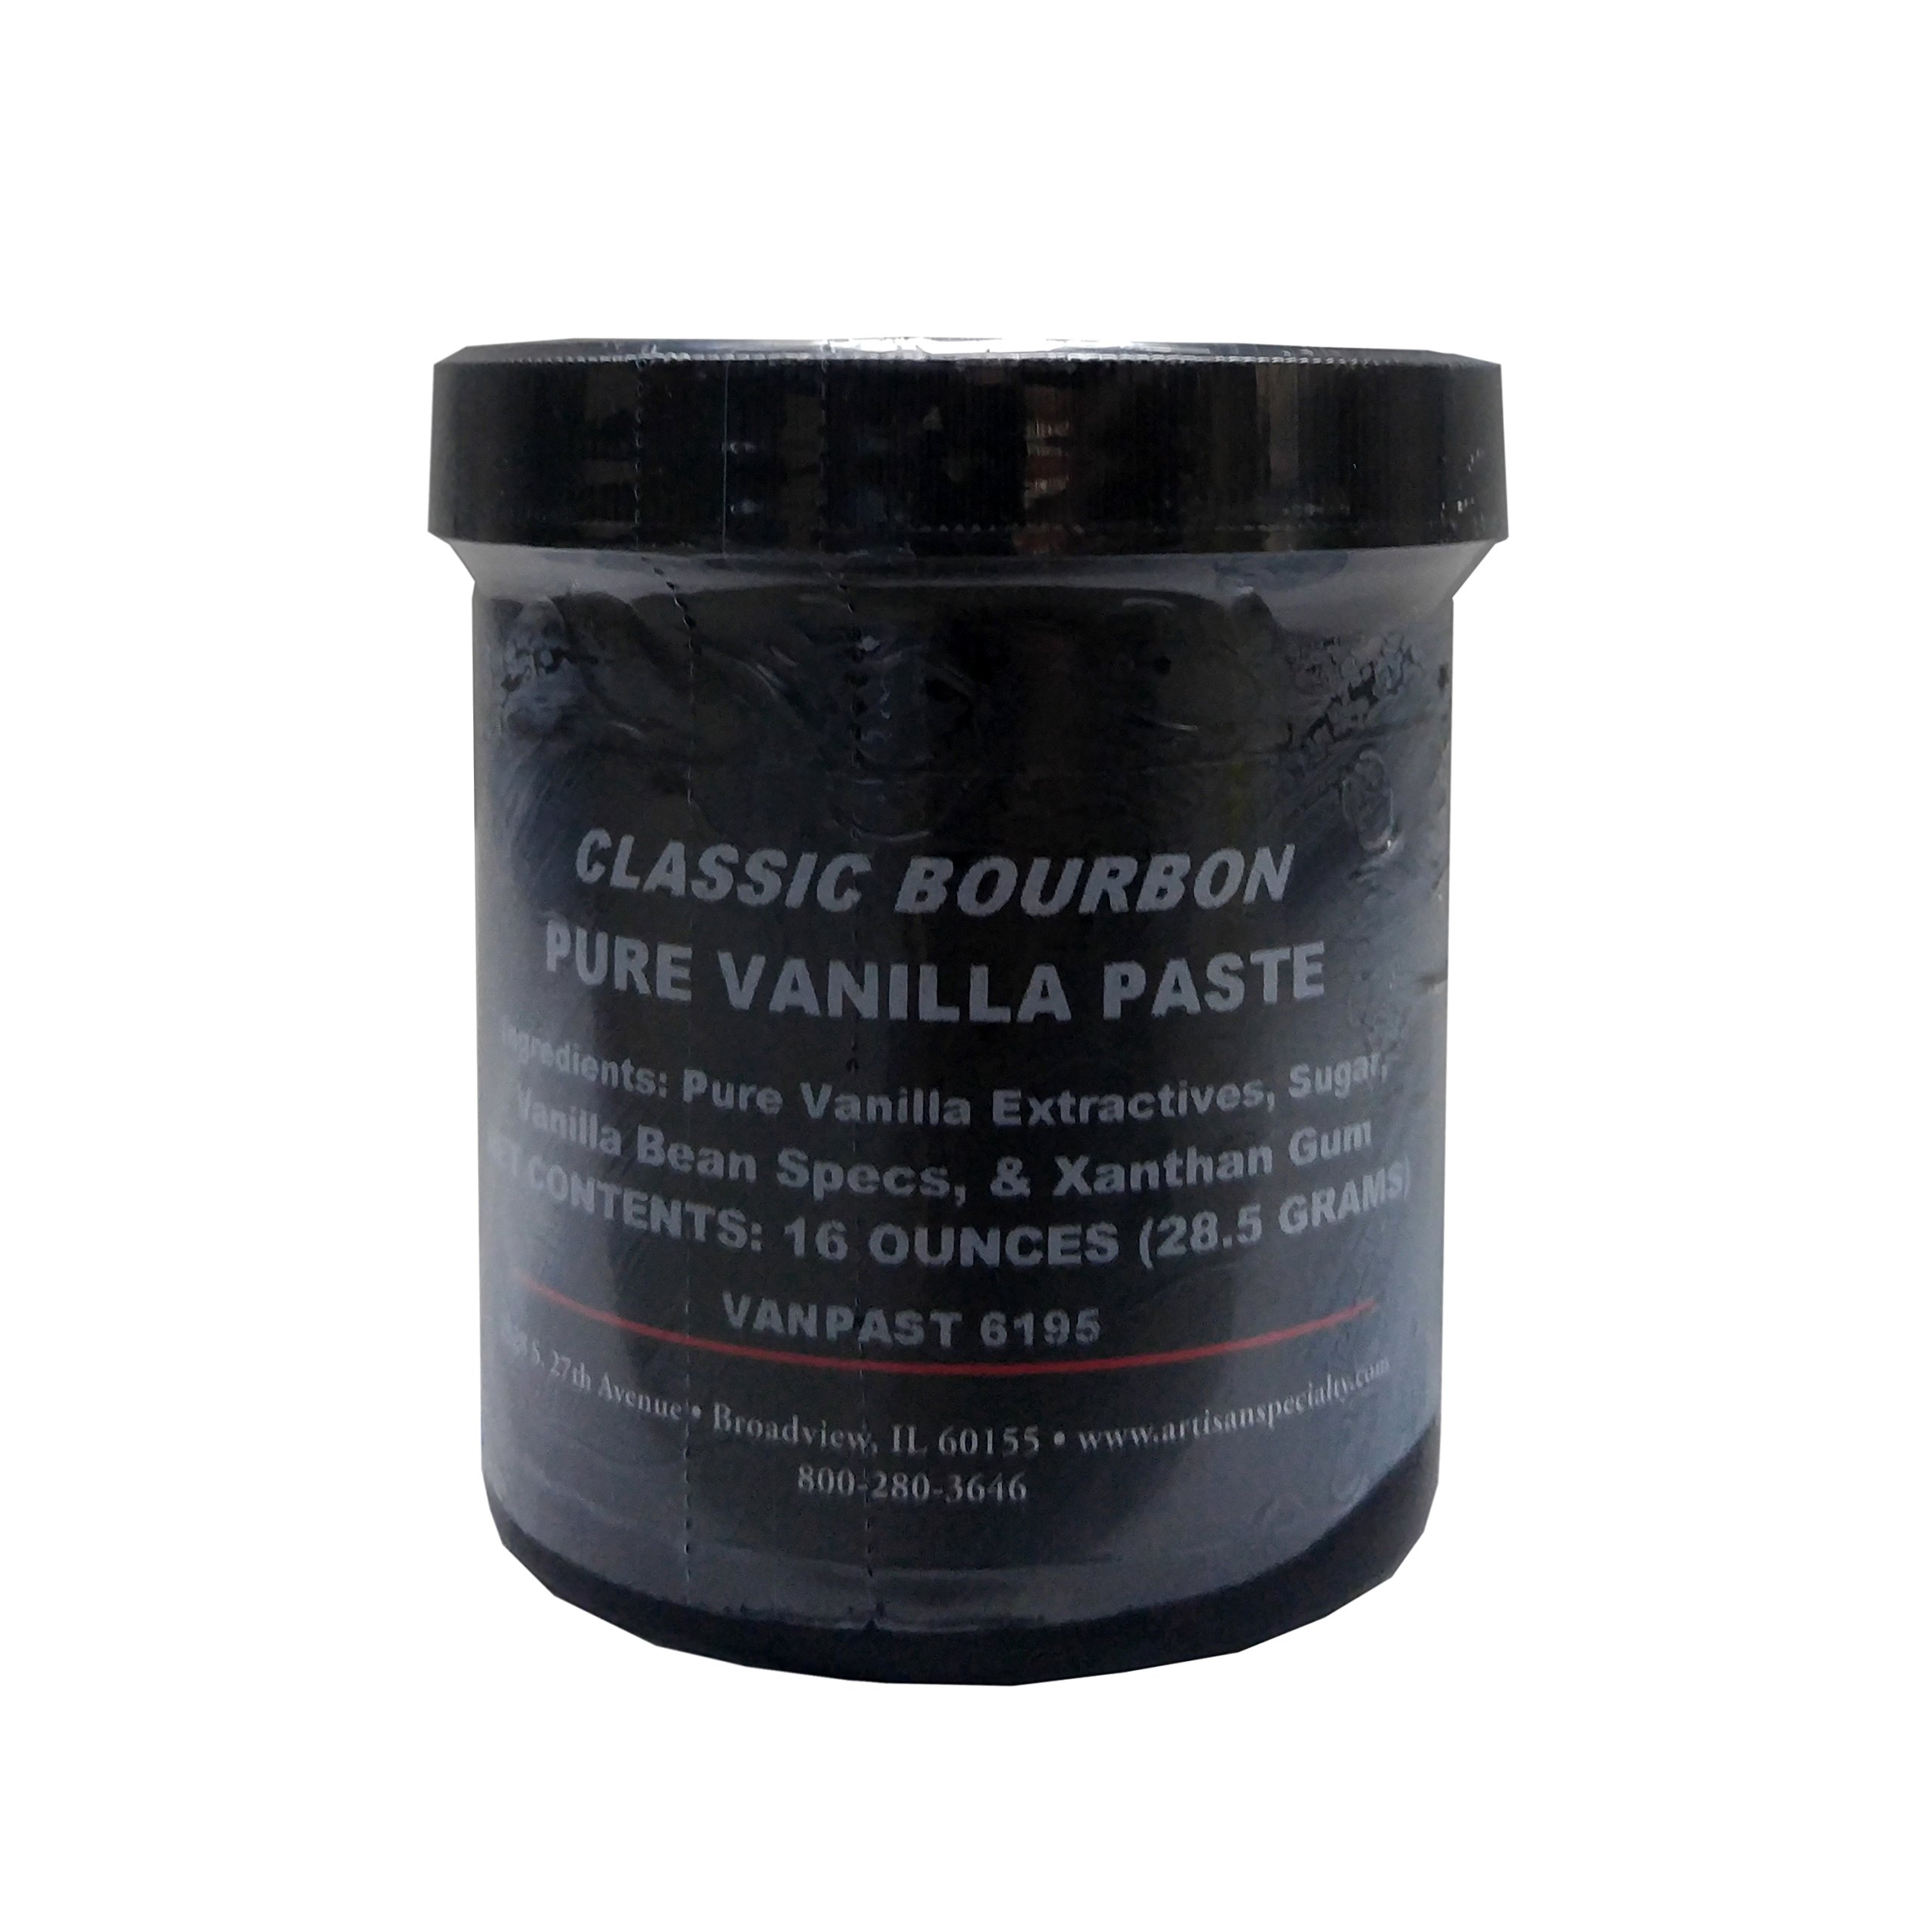 Classic Bourbon Pure Vanilla Paste - 16 oz